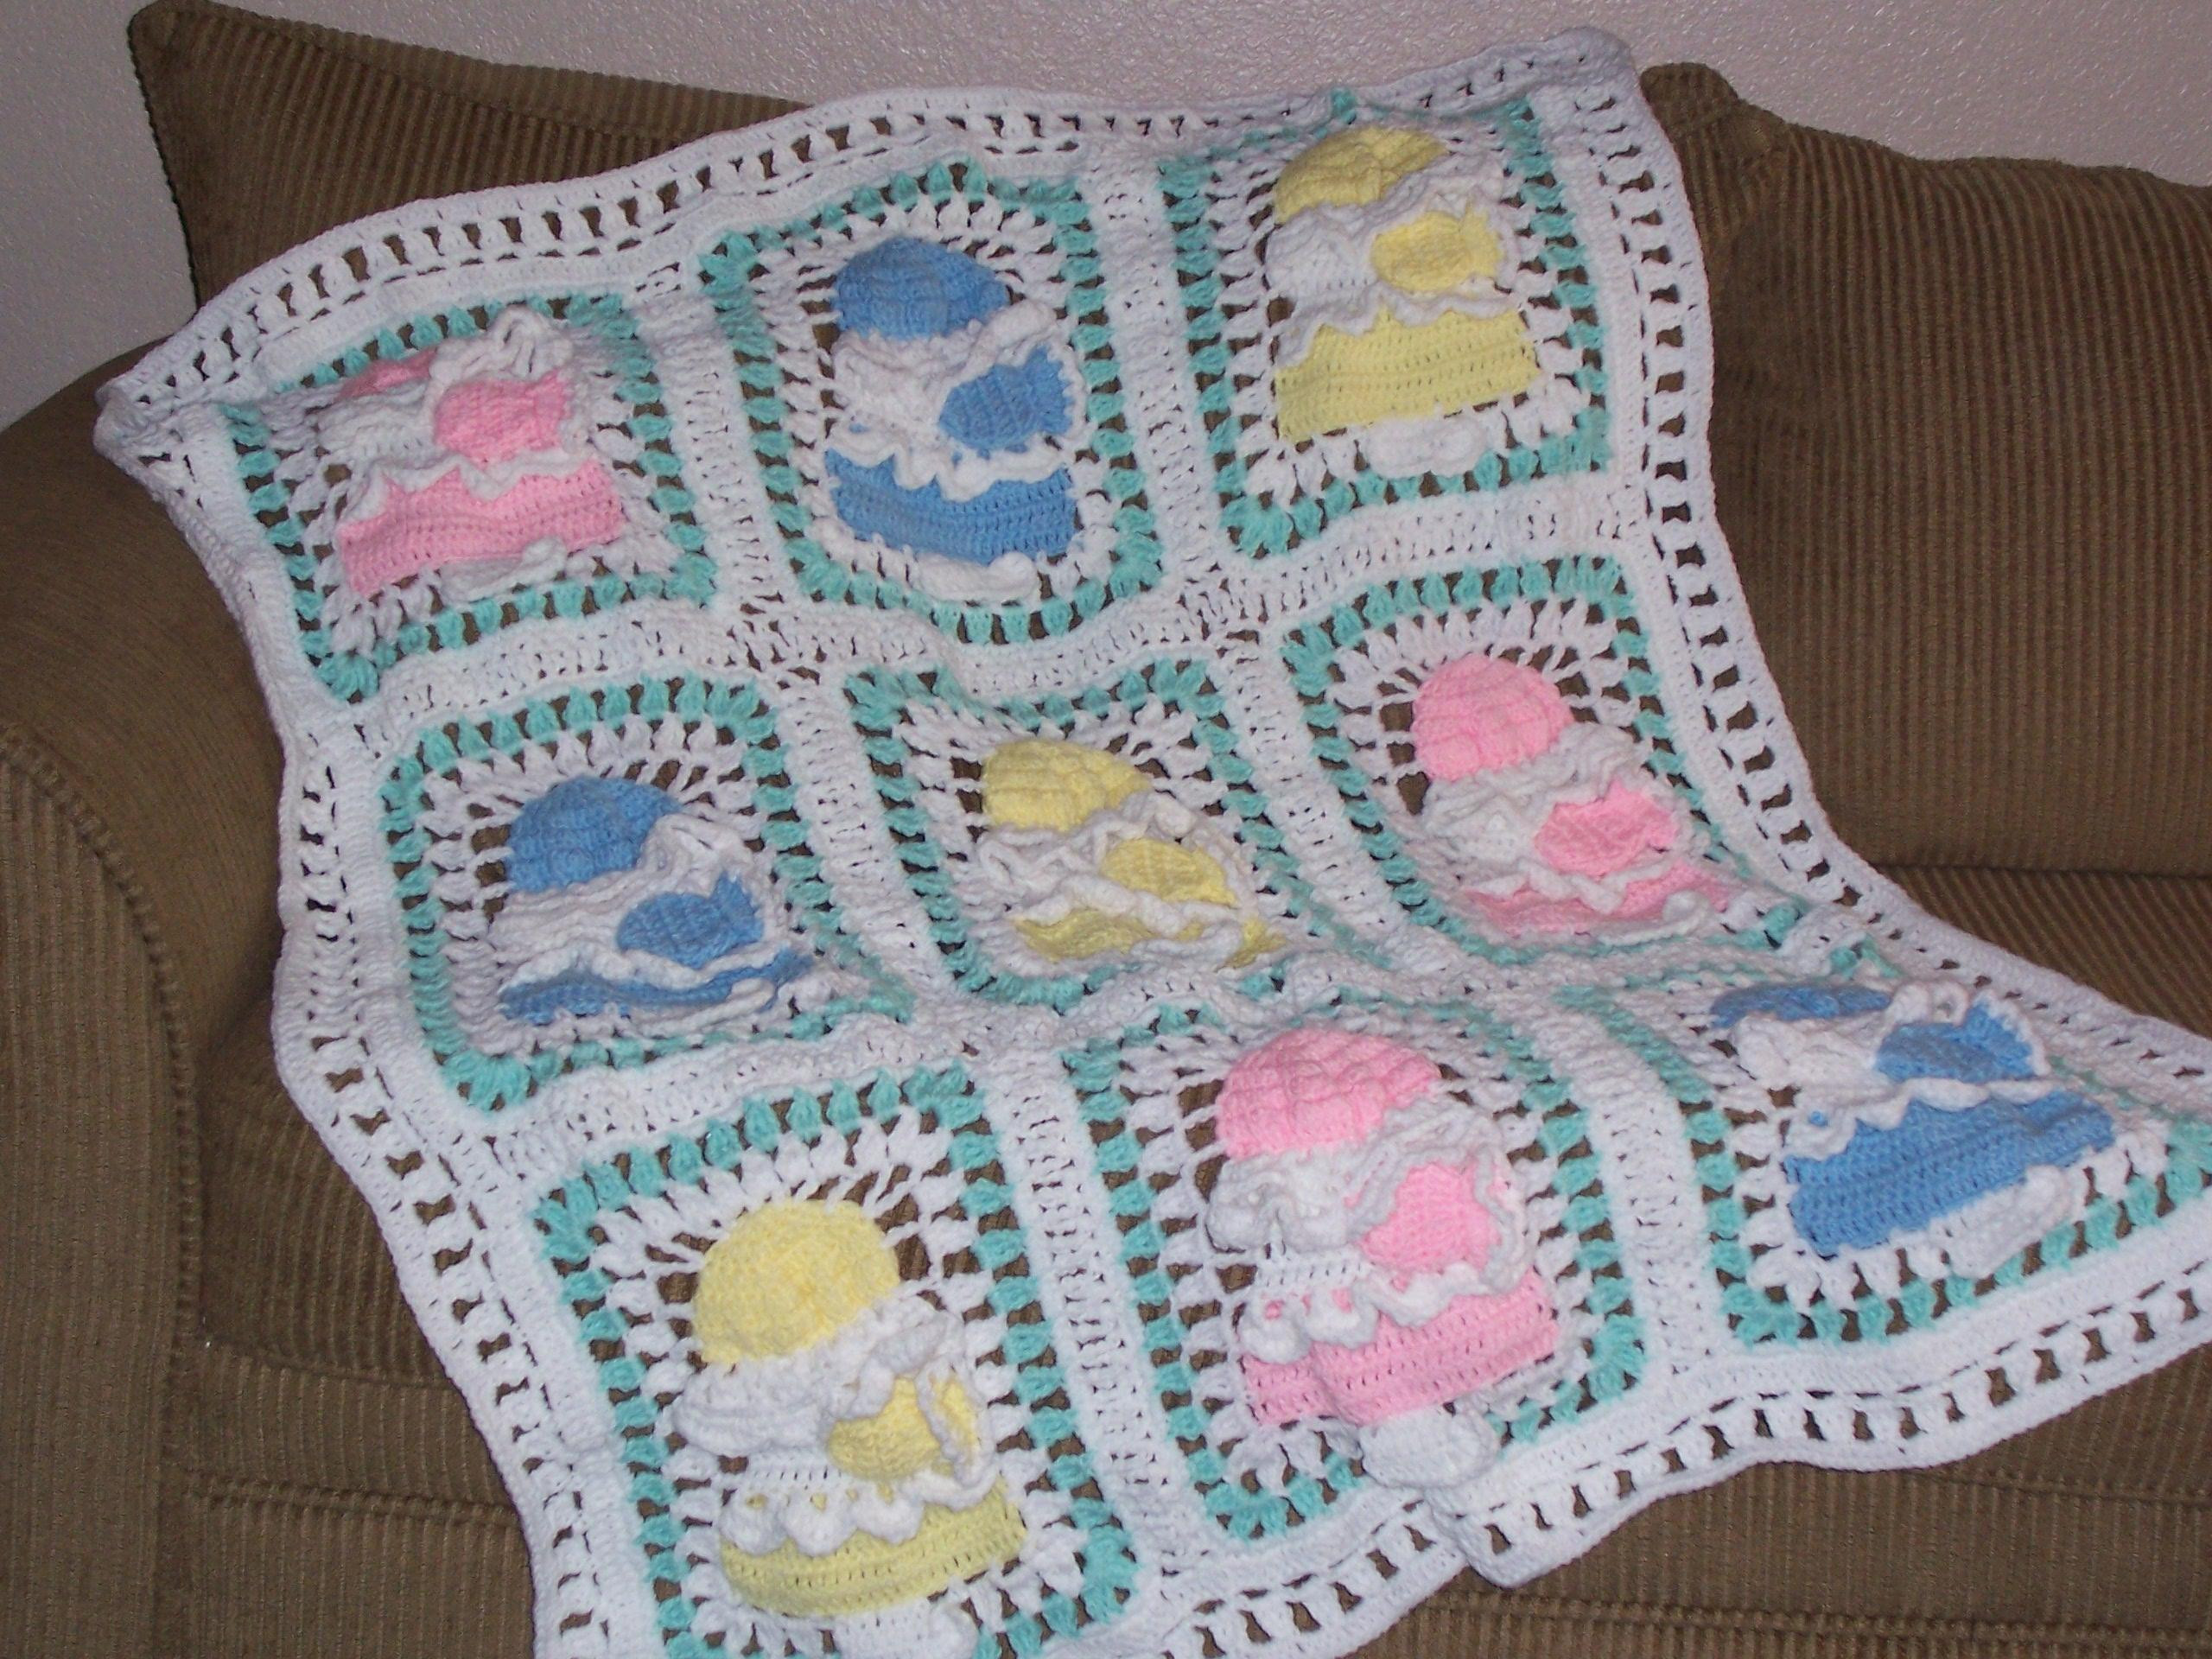 Crochet Afghan Patterns with Pictures Beautiful Judy B S Crochet Creations Of Gorgeous 43 Photos Crochet Afghan Patterns with Pictures